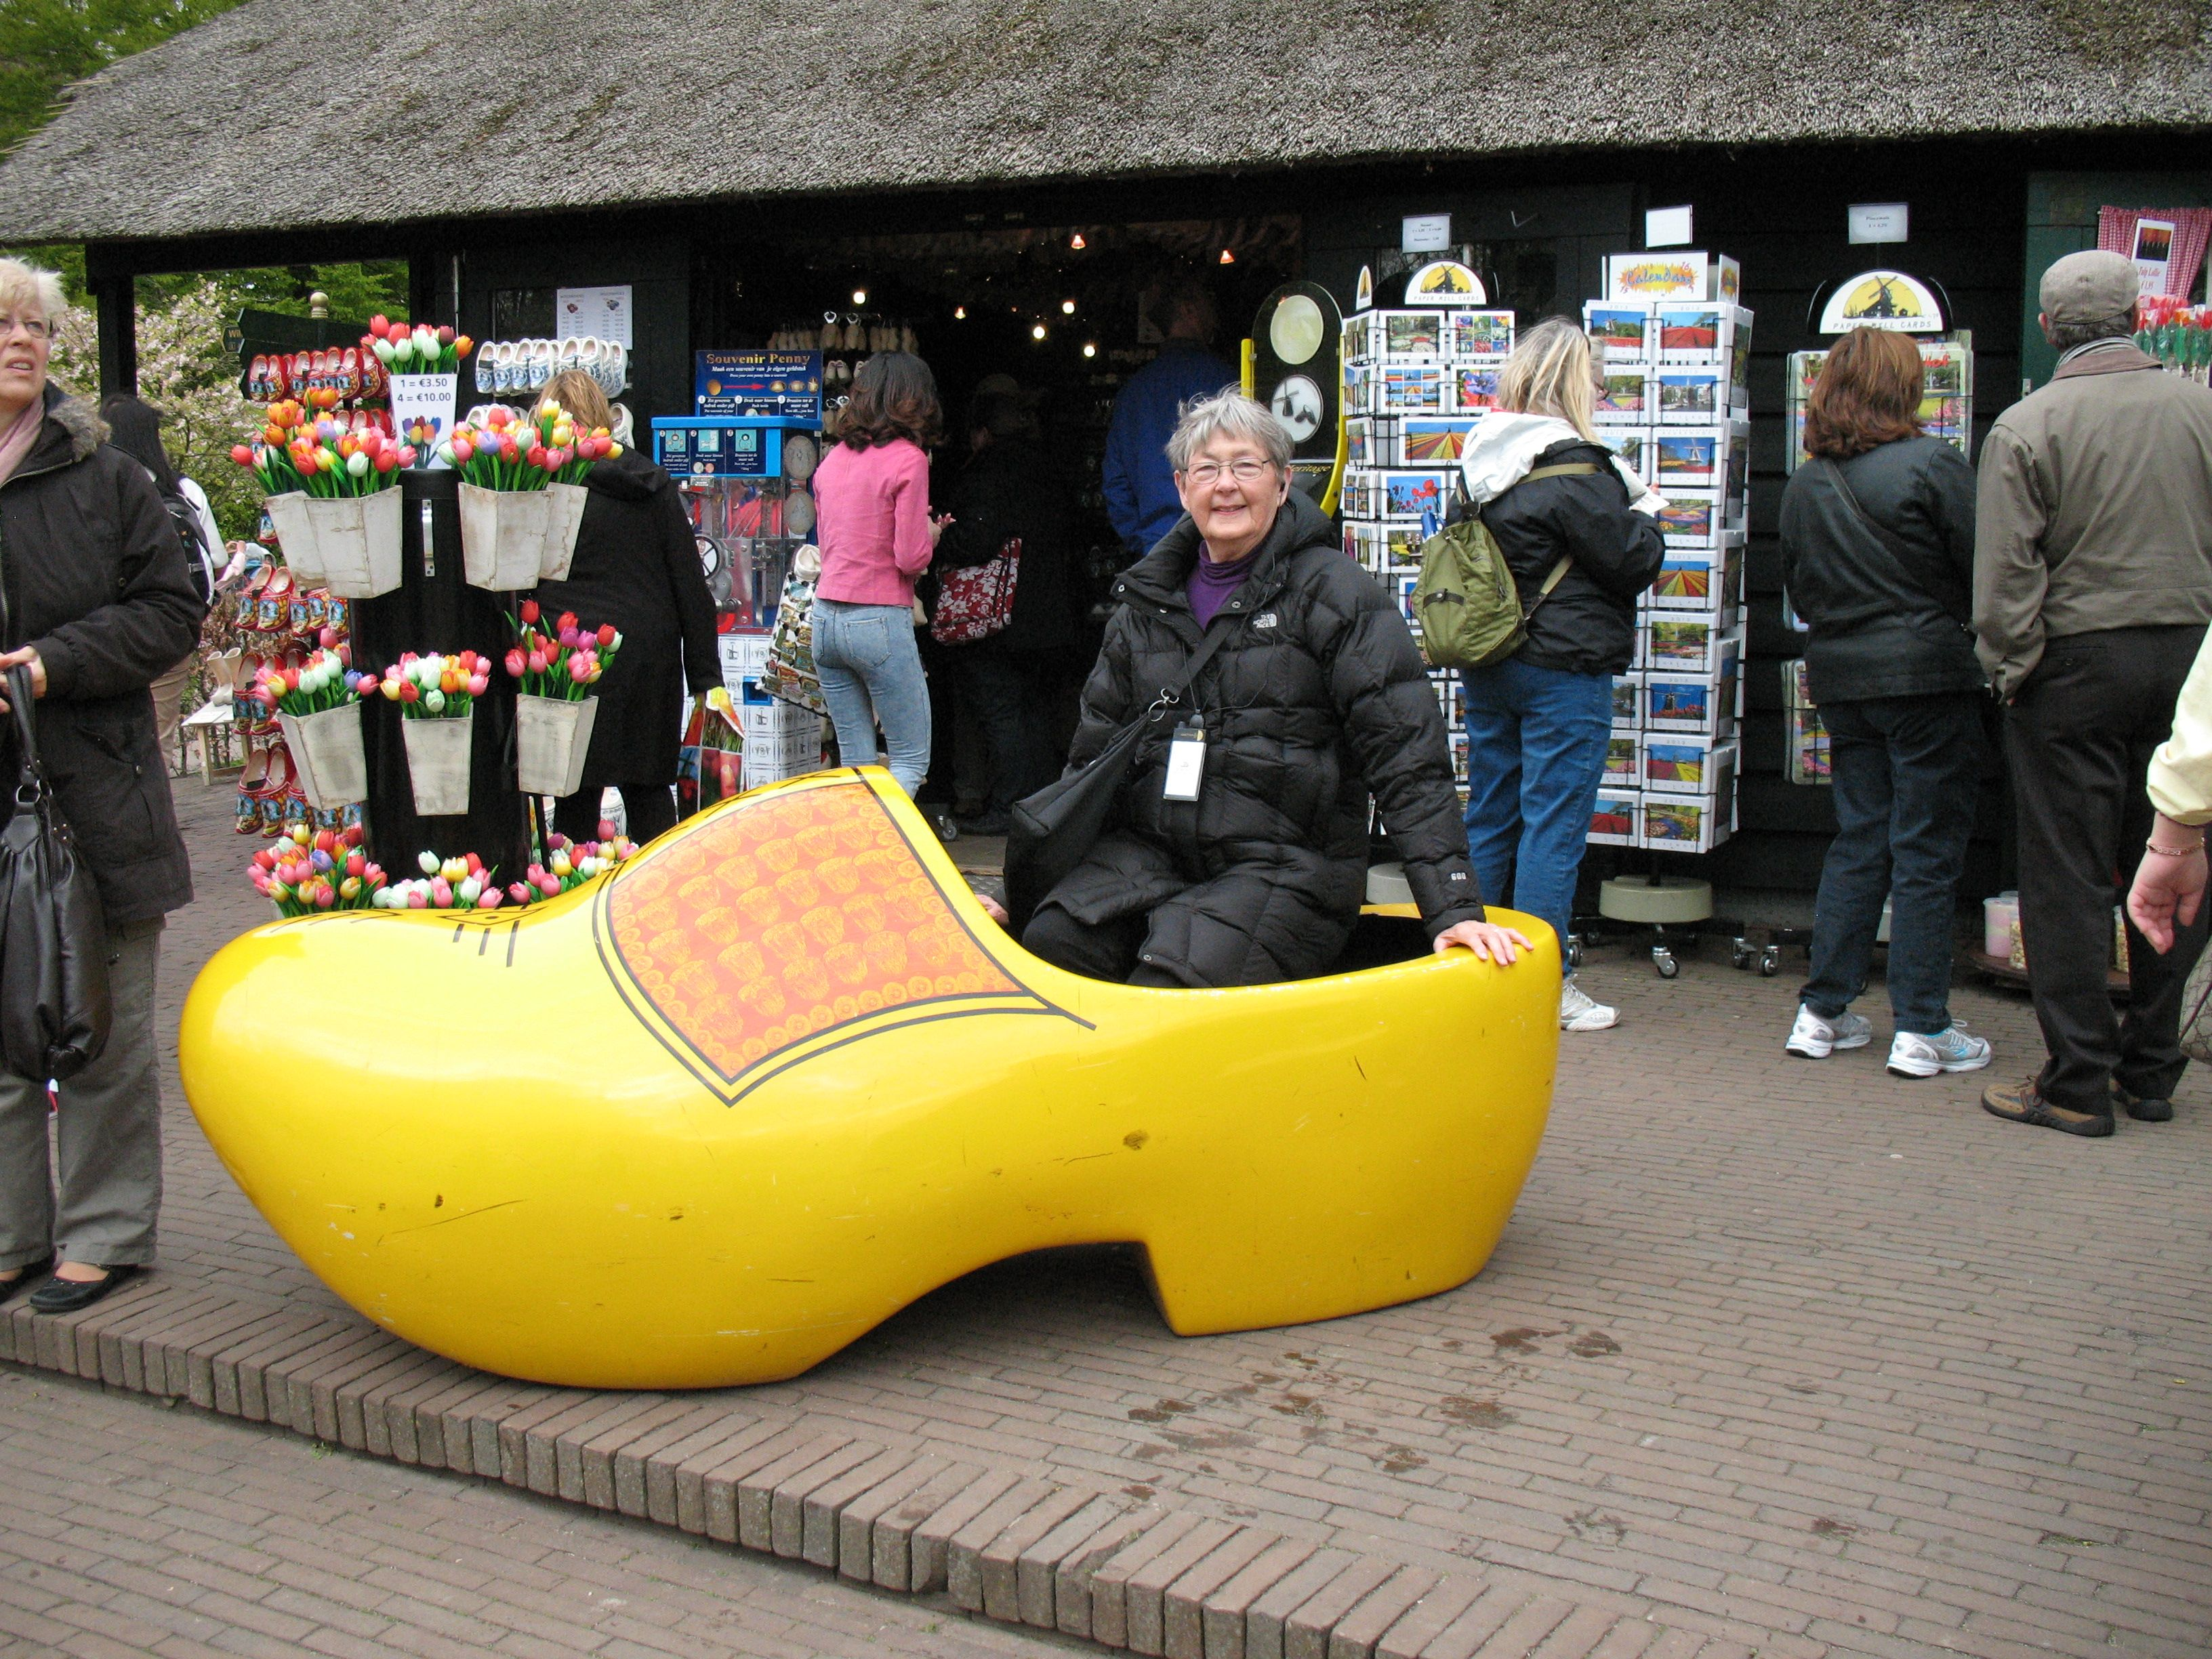 holland i remember having a pair of wooden shoes when i was